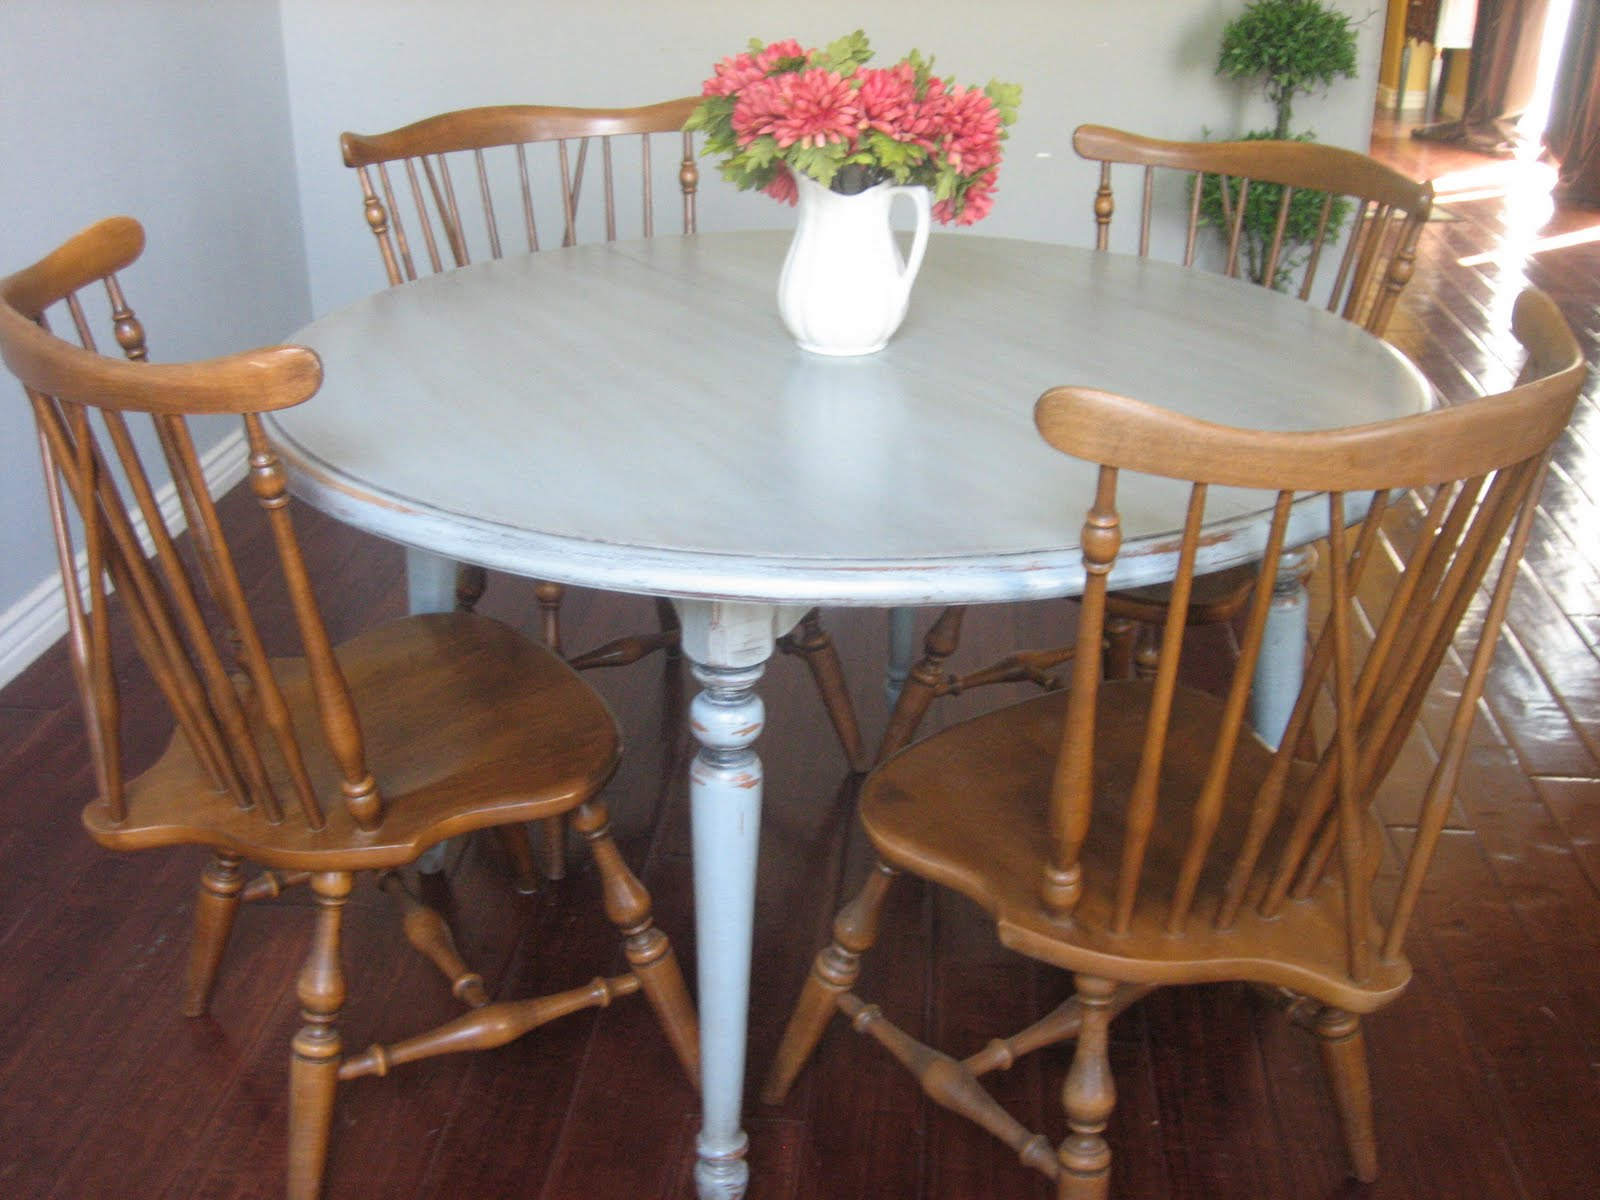 Incredible Antique Maple Dining Table And Chairs Vilas Solid Maple Ibusinesslaw Wood Chair Design Ideas Ibusinesslaworg